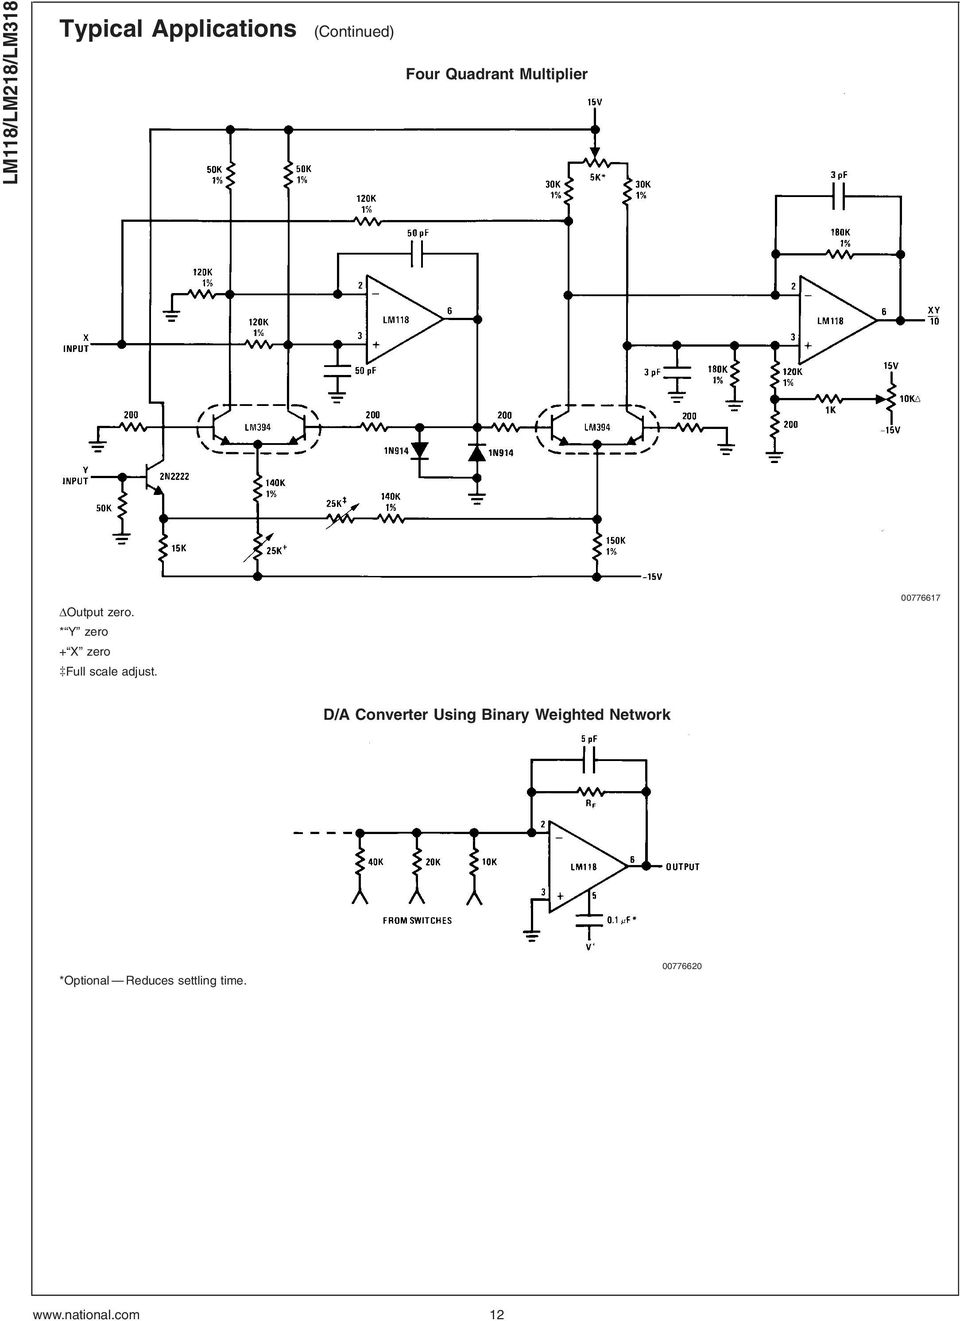 Lm118 Lm218 Lm318 Operational Amplifiers Pdf Lm412 Sample And Hold Y Zero X Full Scale Adjust